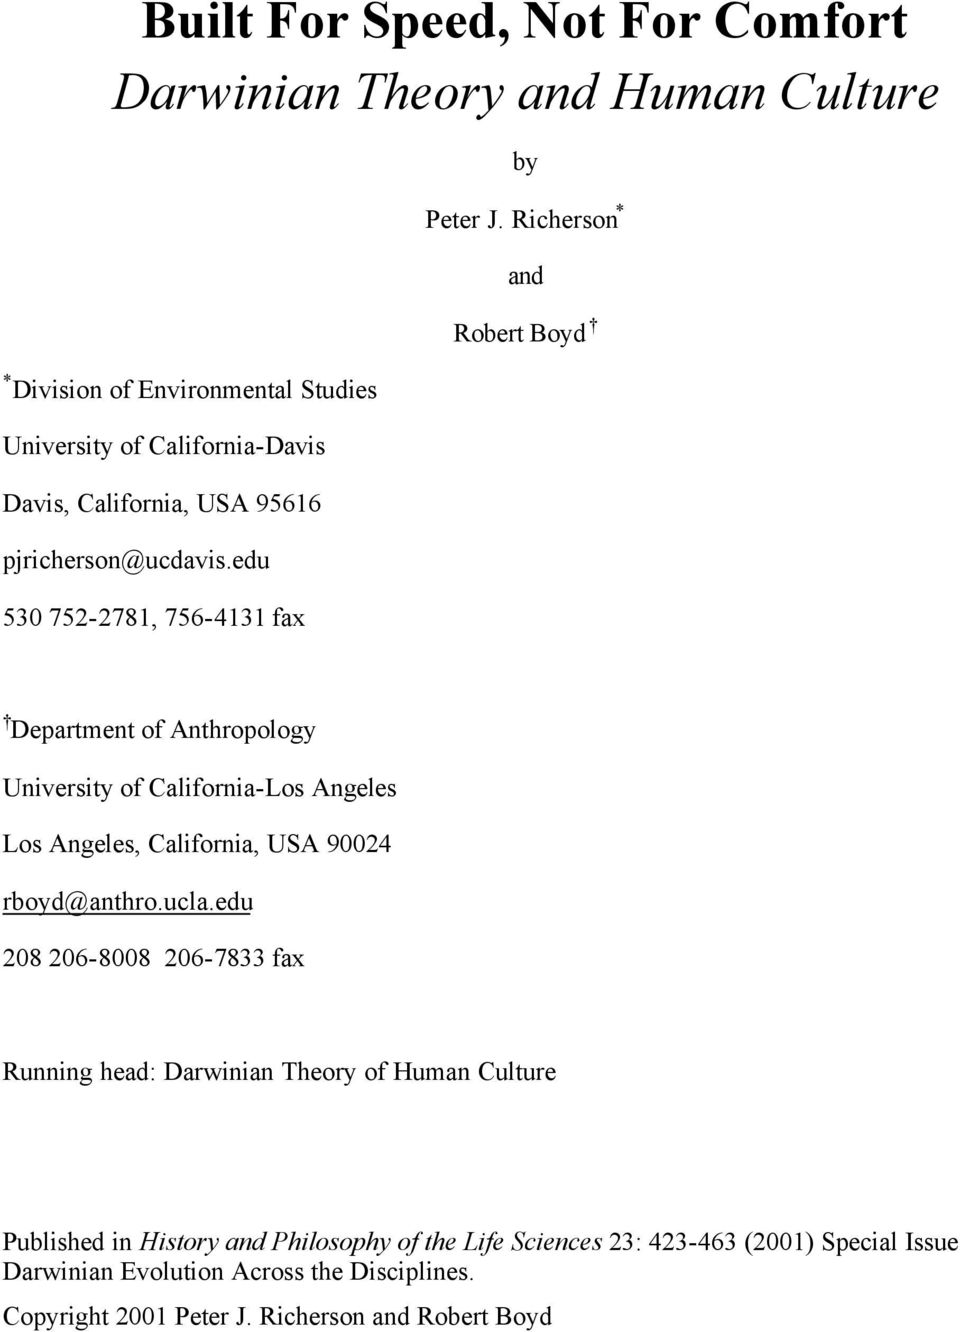 Richerson * and Robert Boyd Department of Anthropology University of California-Los Angeles Los Angeles, California, USA 90024 rboyd@anthro.ucla.